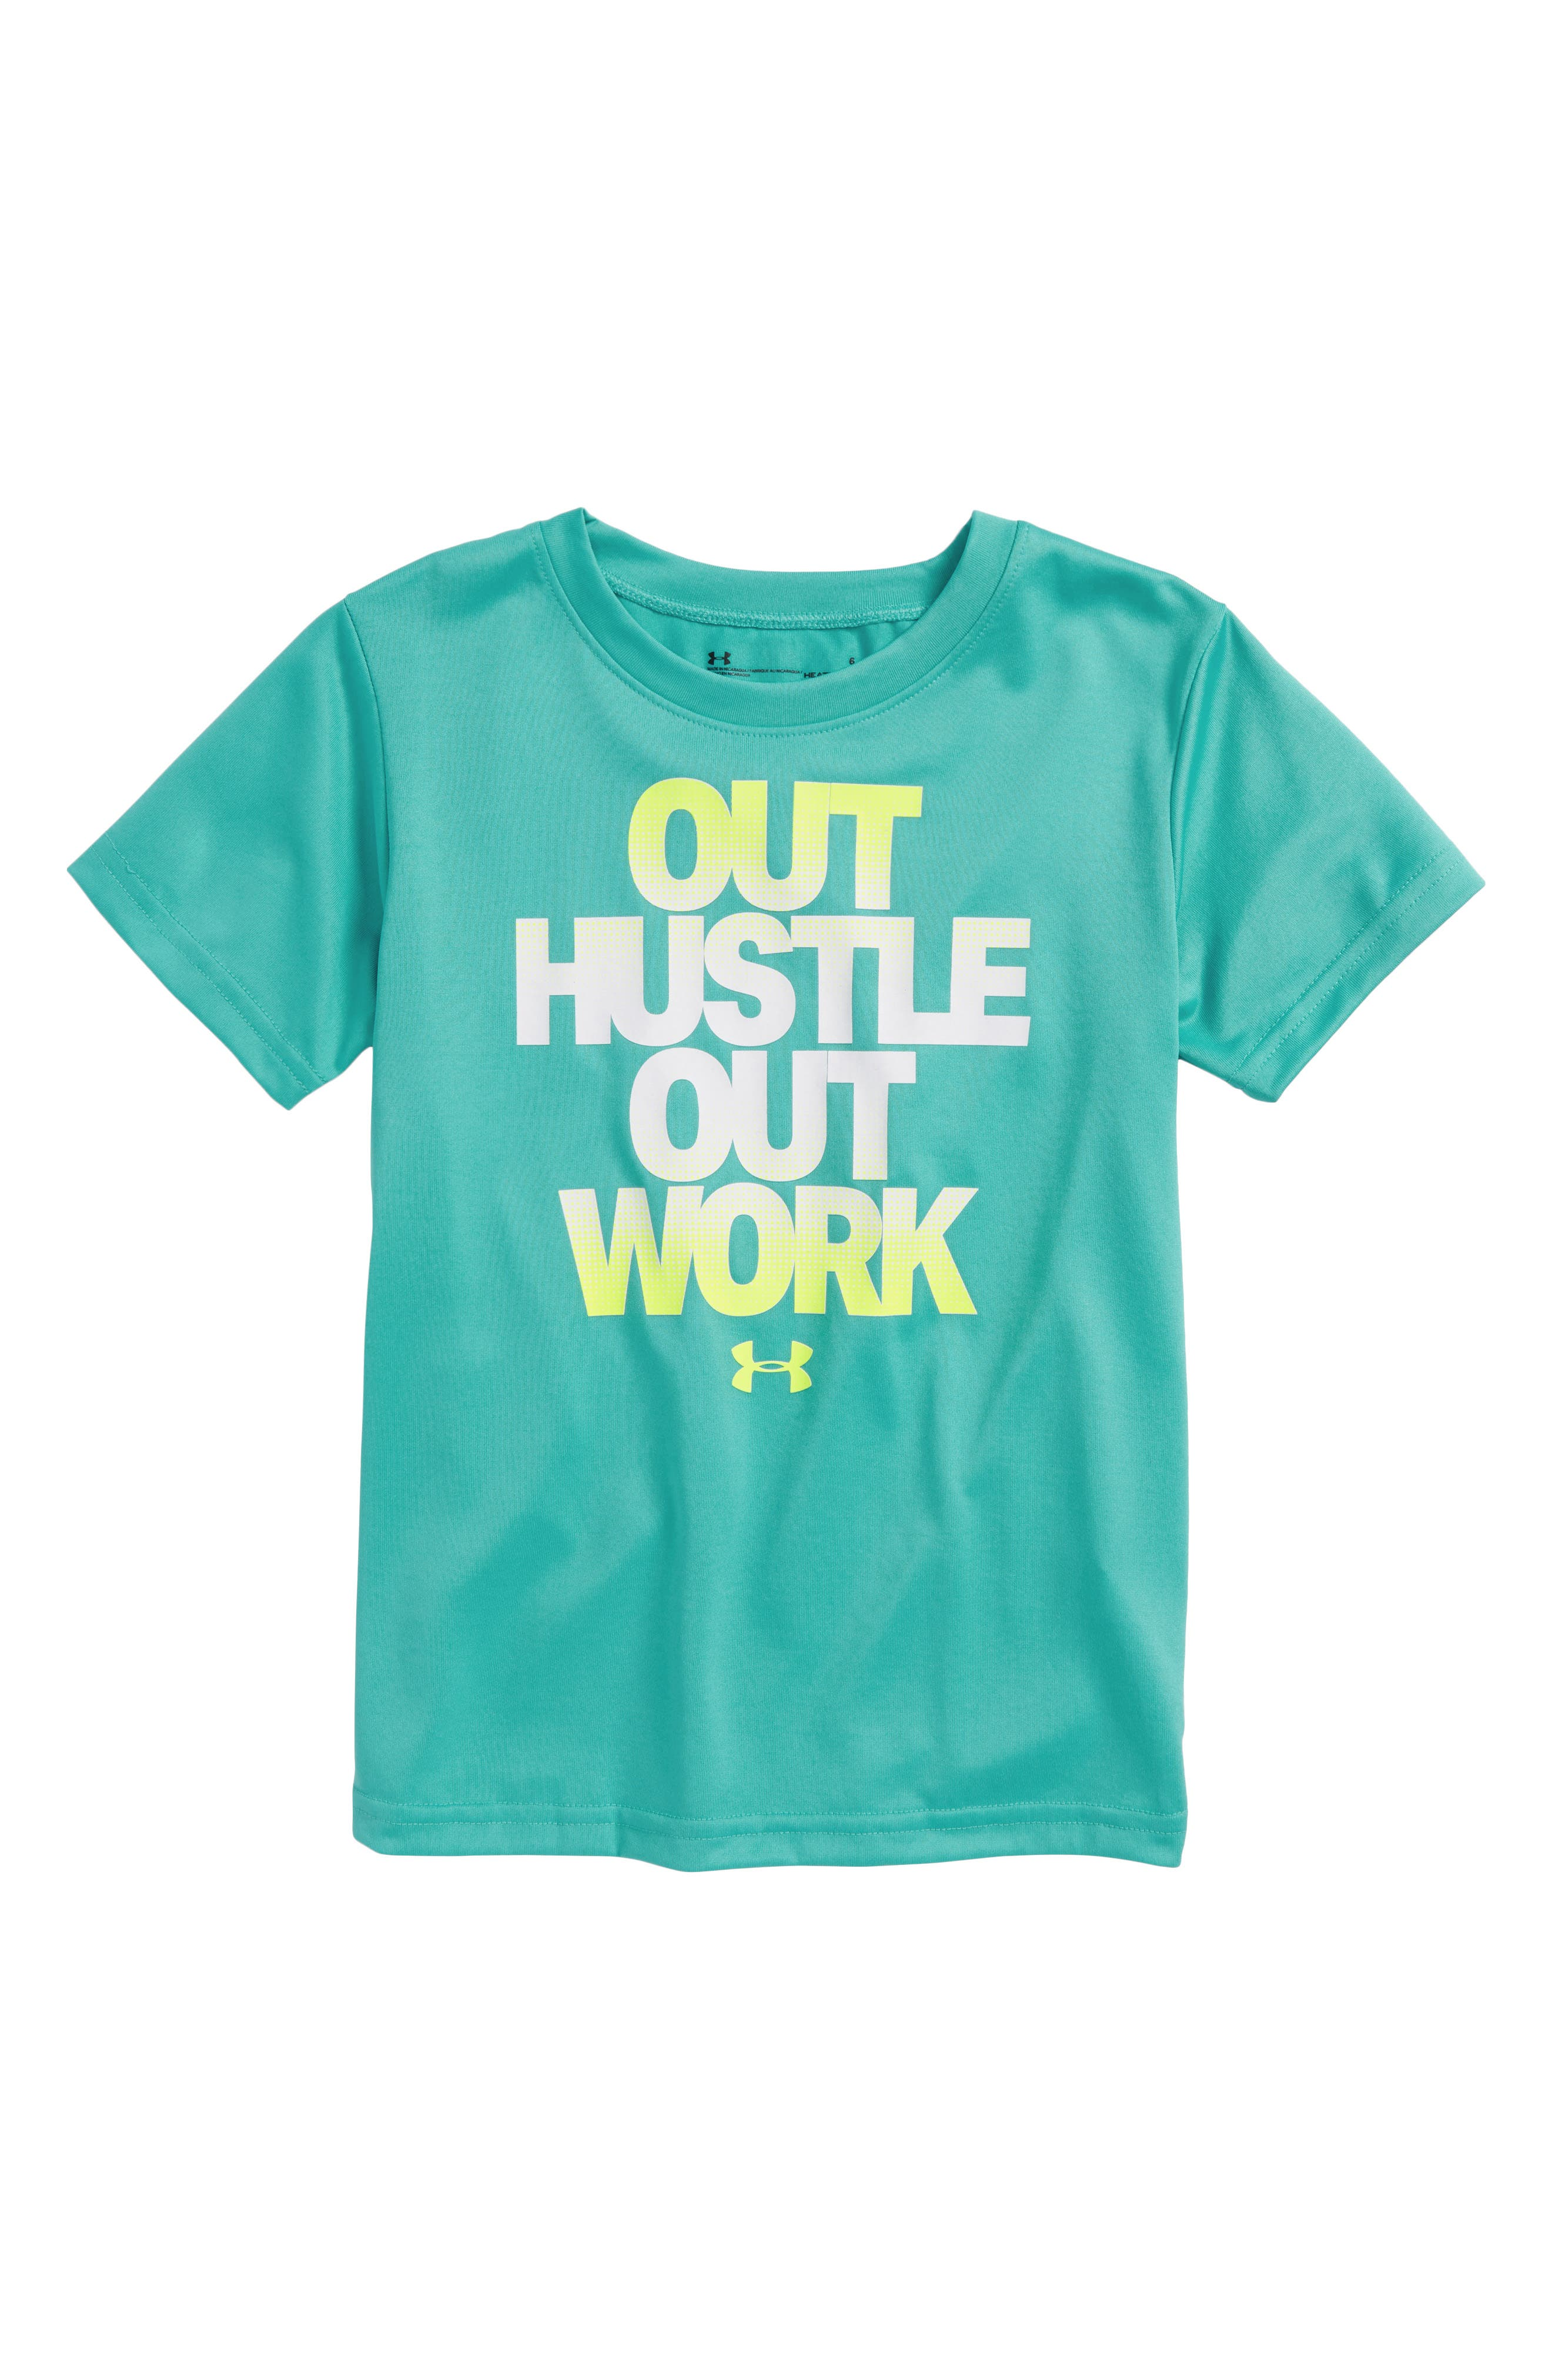 Main Image - Under Armour Out Hustle Out Work HeatGear® T-Shirt (Toddler Boys & Little Boys)